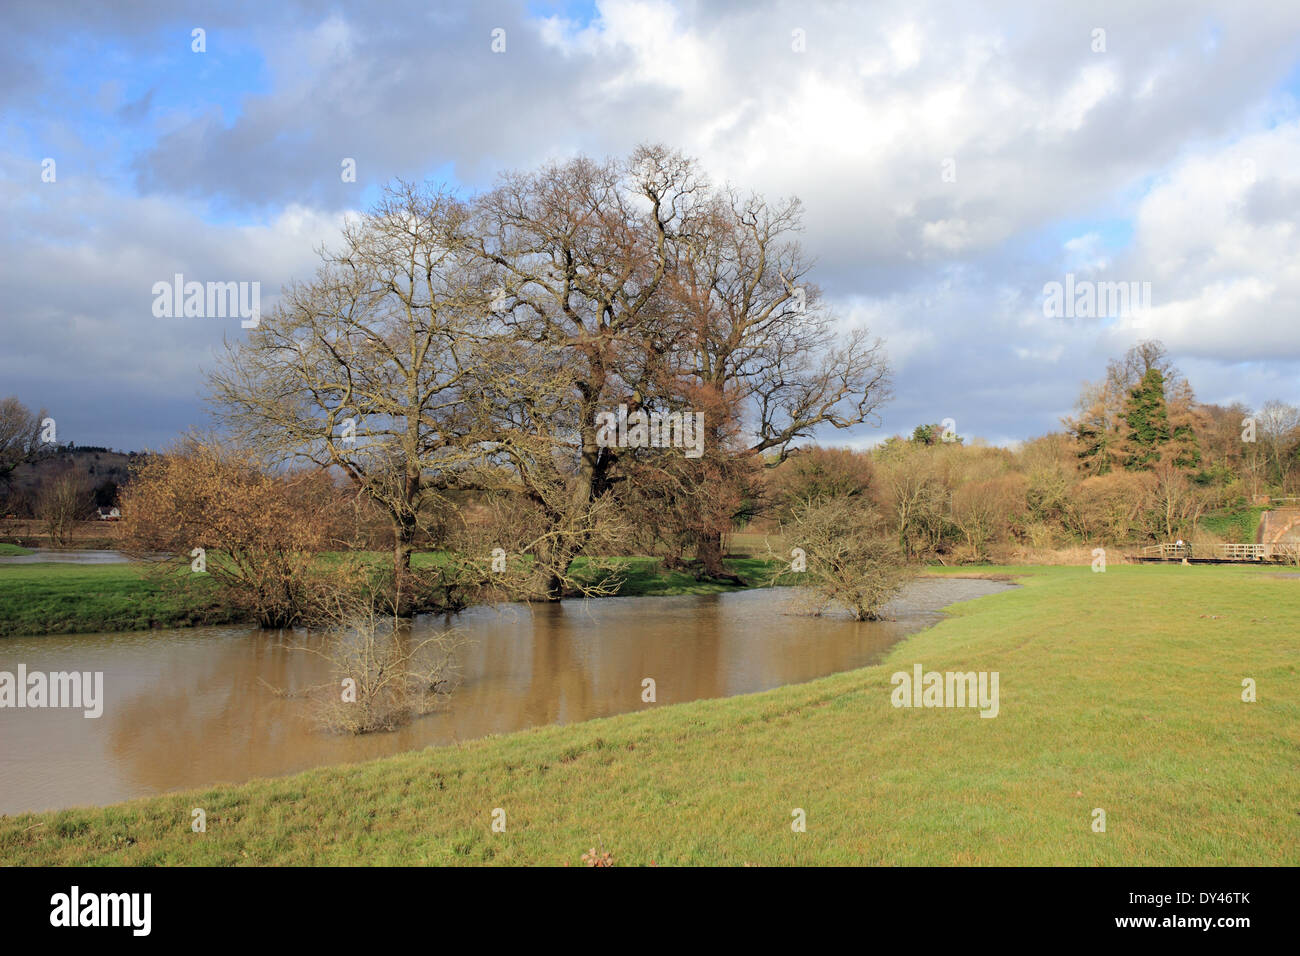 An Oxbow lake on the River Mole at Westhumble near Dorking, Surrey, England, UK - Stock Image